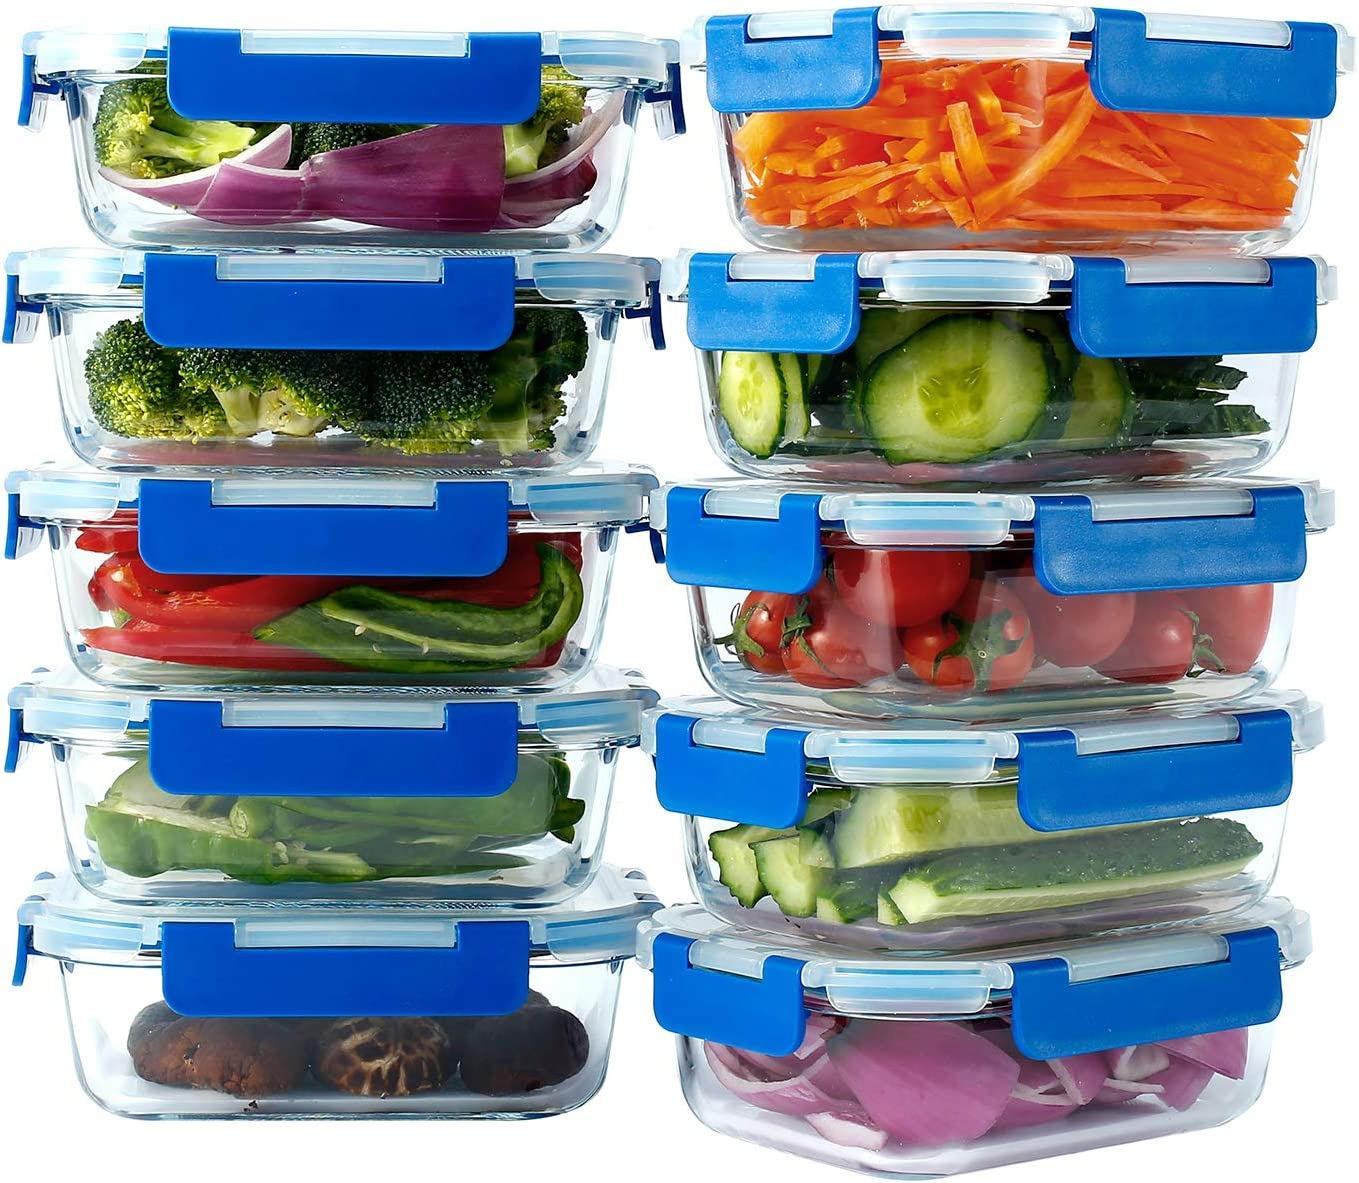 N / A LoveInLunchBox Pyrex Glass Storage containers with lids Meal prep Food Storage Stain and Odor Resistant Easily Stackable BPA-Free for Oven Microwave and Dishwasher Safe(28 Ounce 10 Pack)